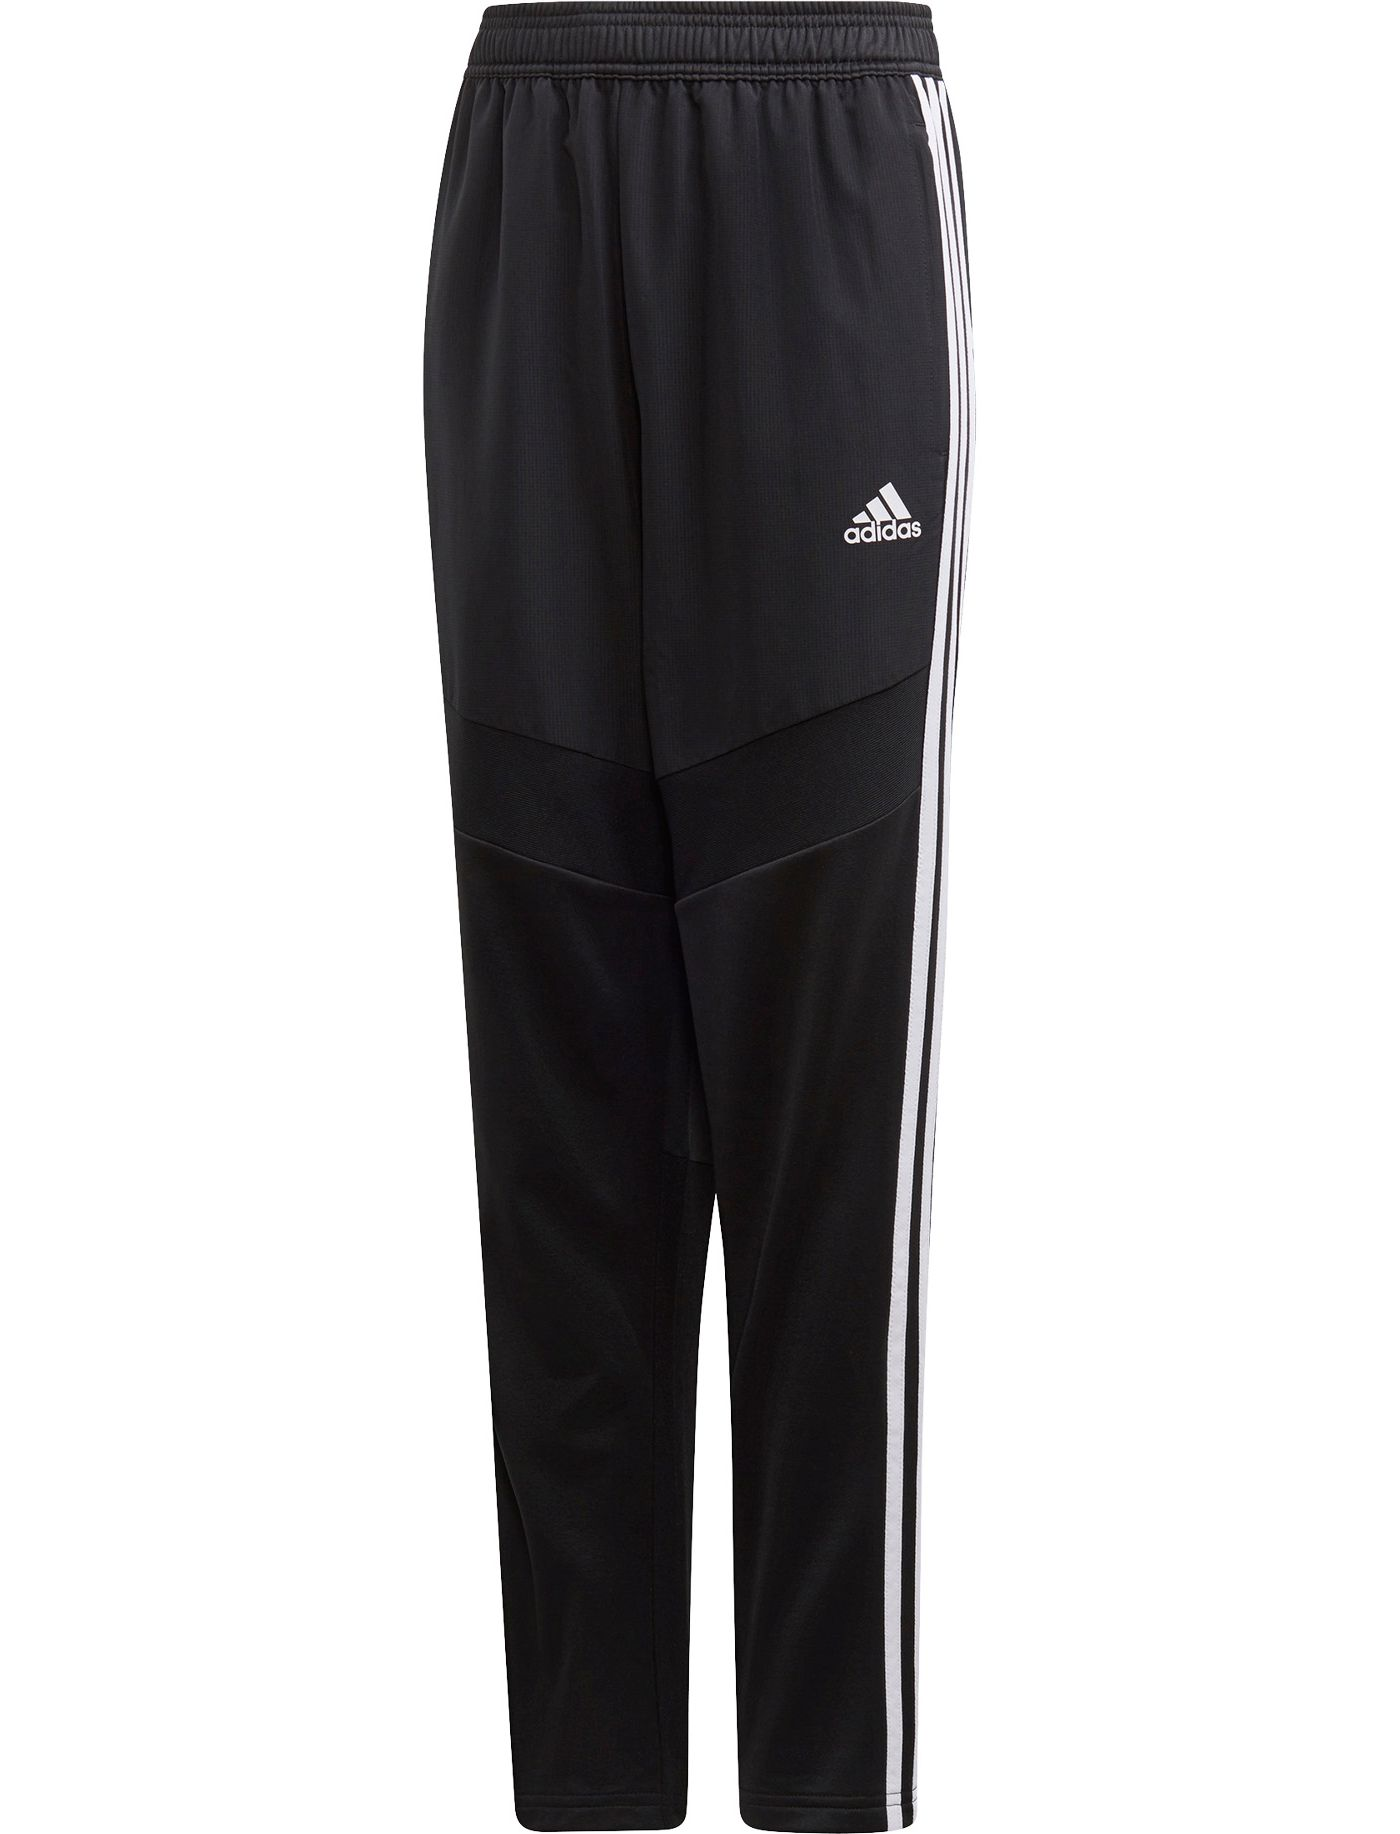 adidas Boys' Tiro 19 Warm Training Pants